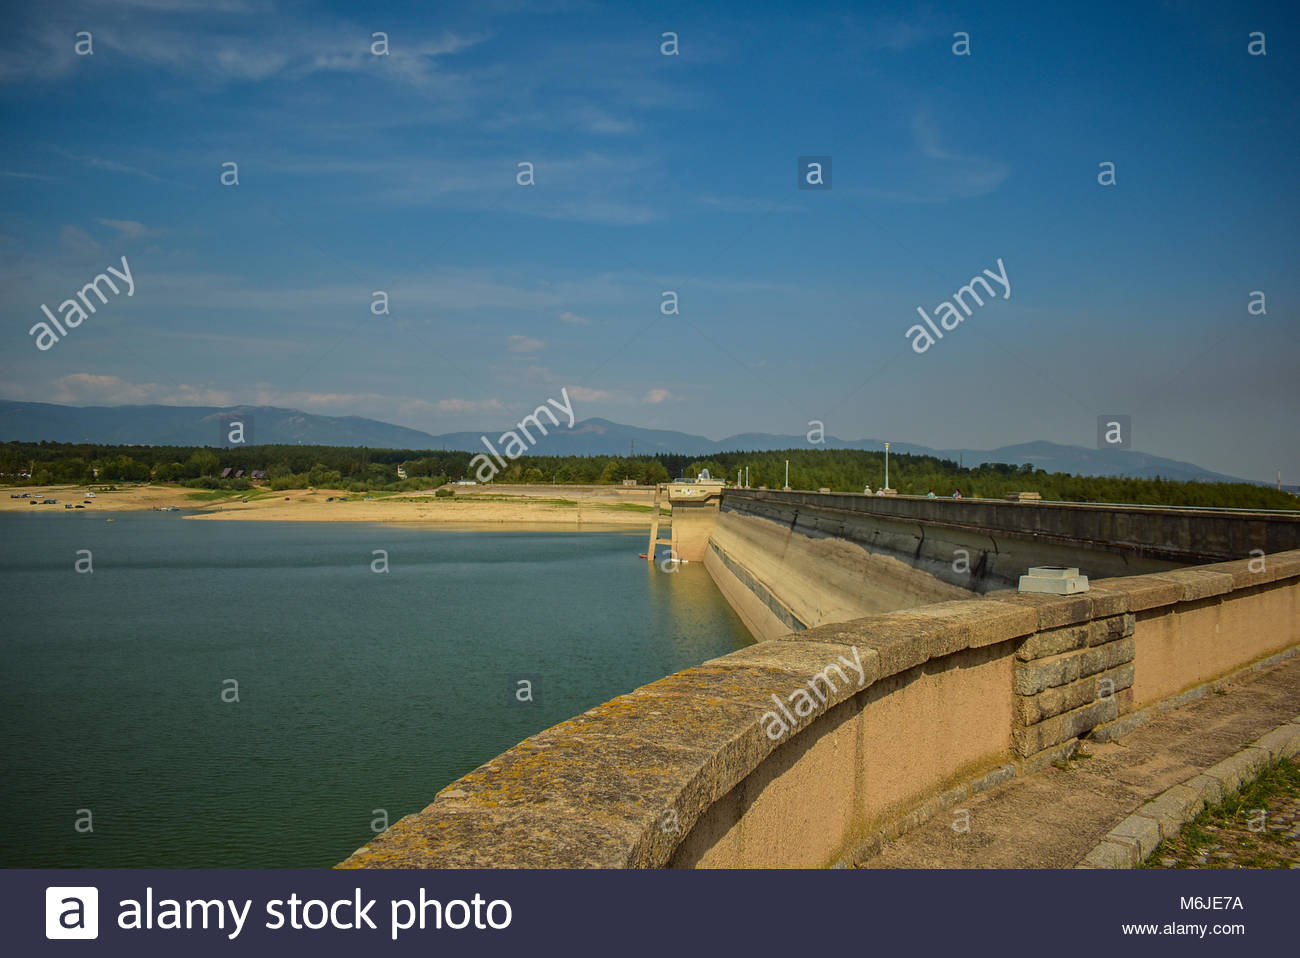 A hot summer day at Koprinka dam near Kazanlak town, South Bulgaria. - Stock Image